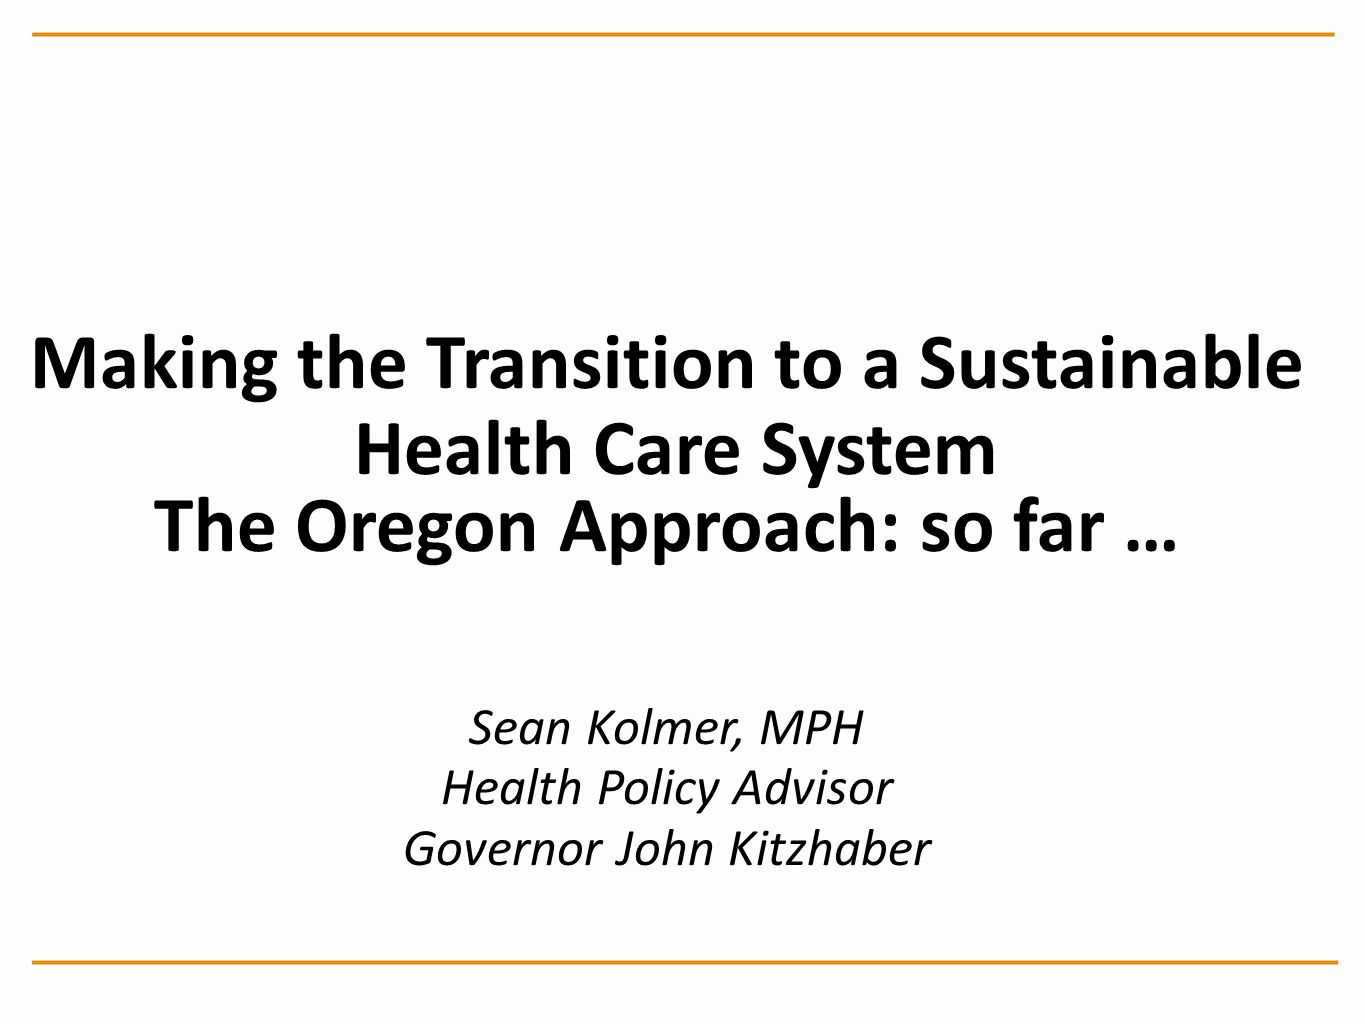 Making the Transition to a Sustainable Health Care System The Oregon Approach: so far … Sean Kolmer, MPH Health Policy Advisor Governor John Kitzhaber